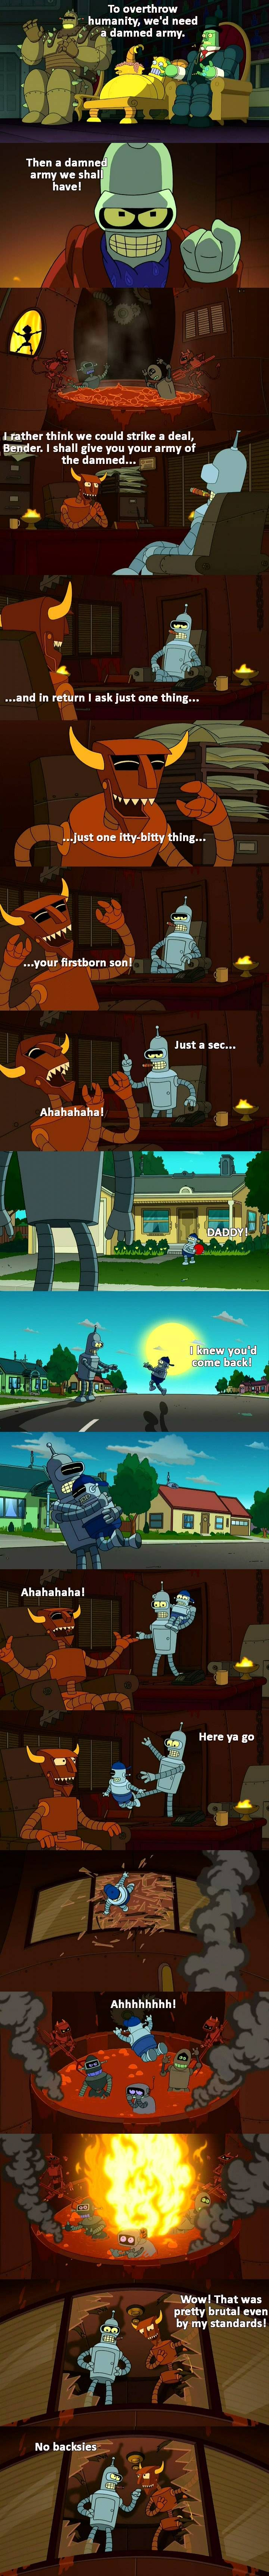 Futurama never held back on dark jokes